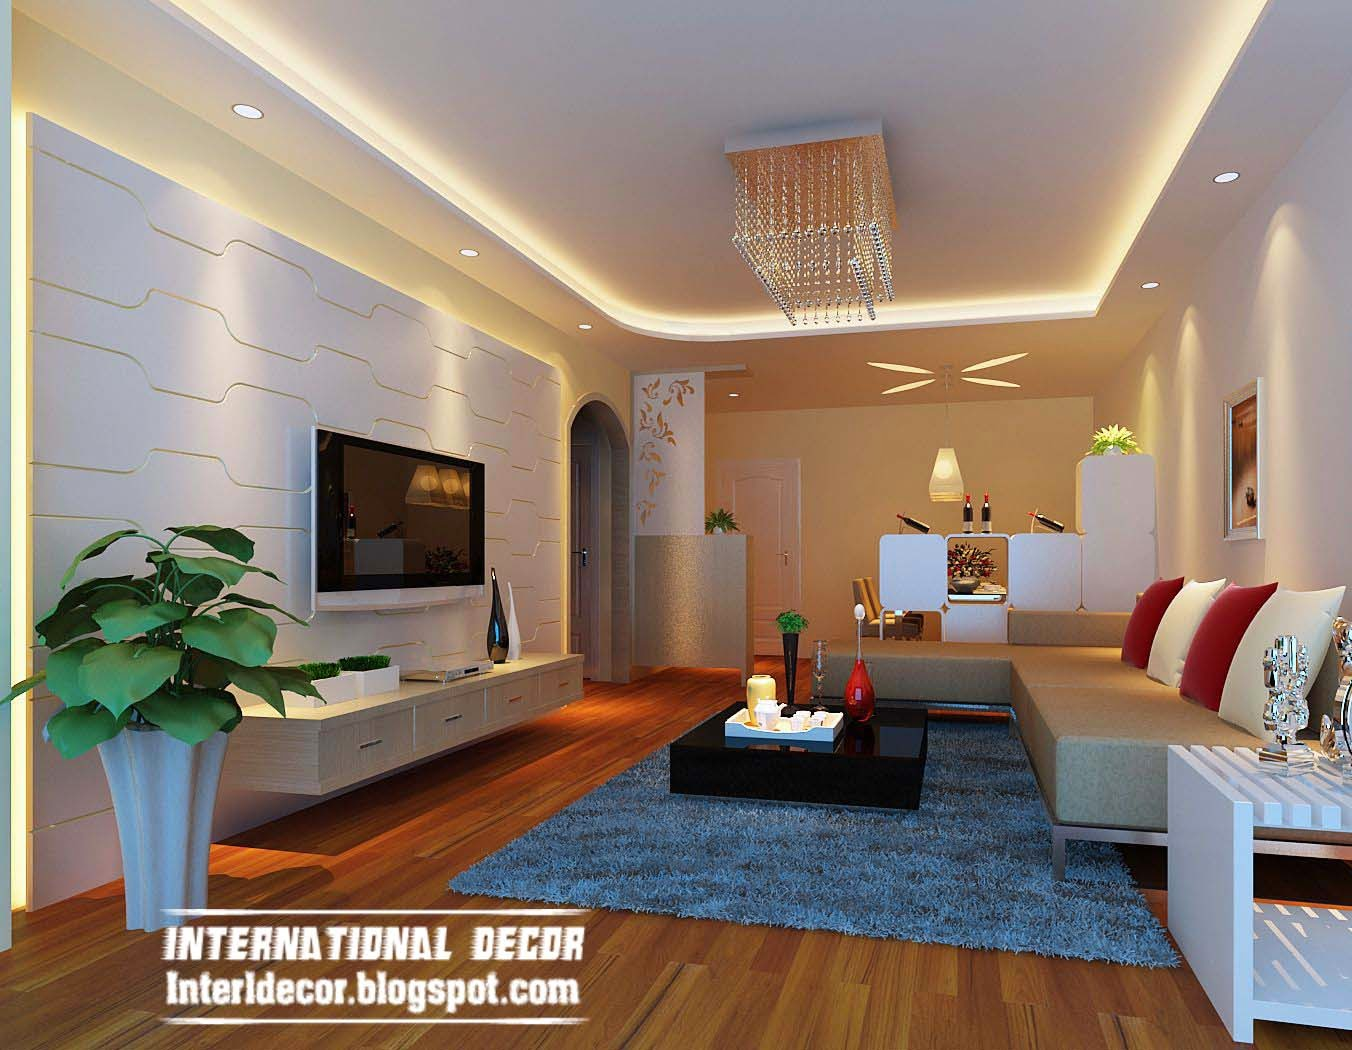 Modern Living Room Interior Design 2014 - Interior Design